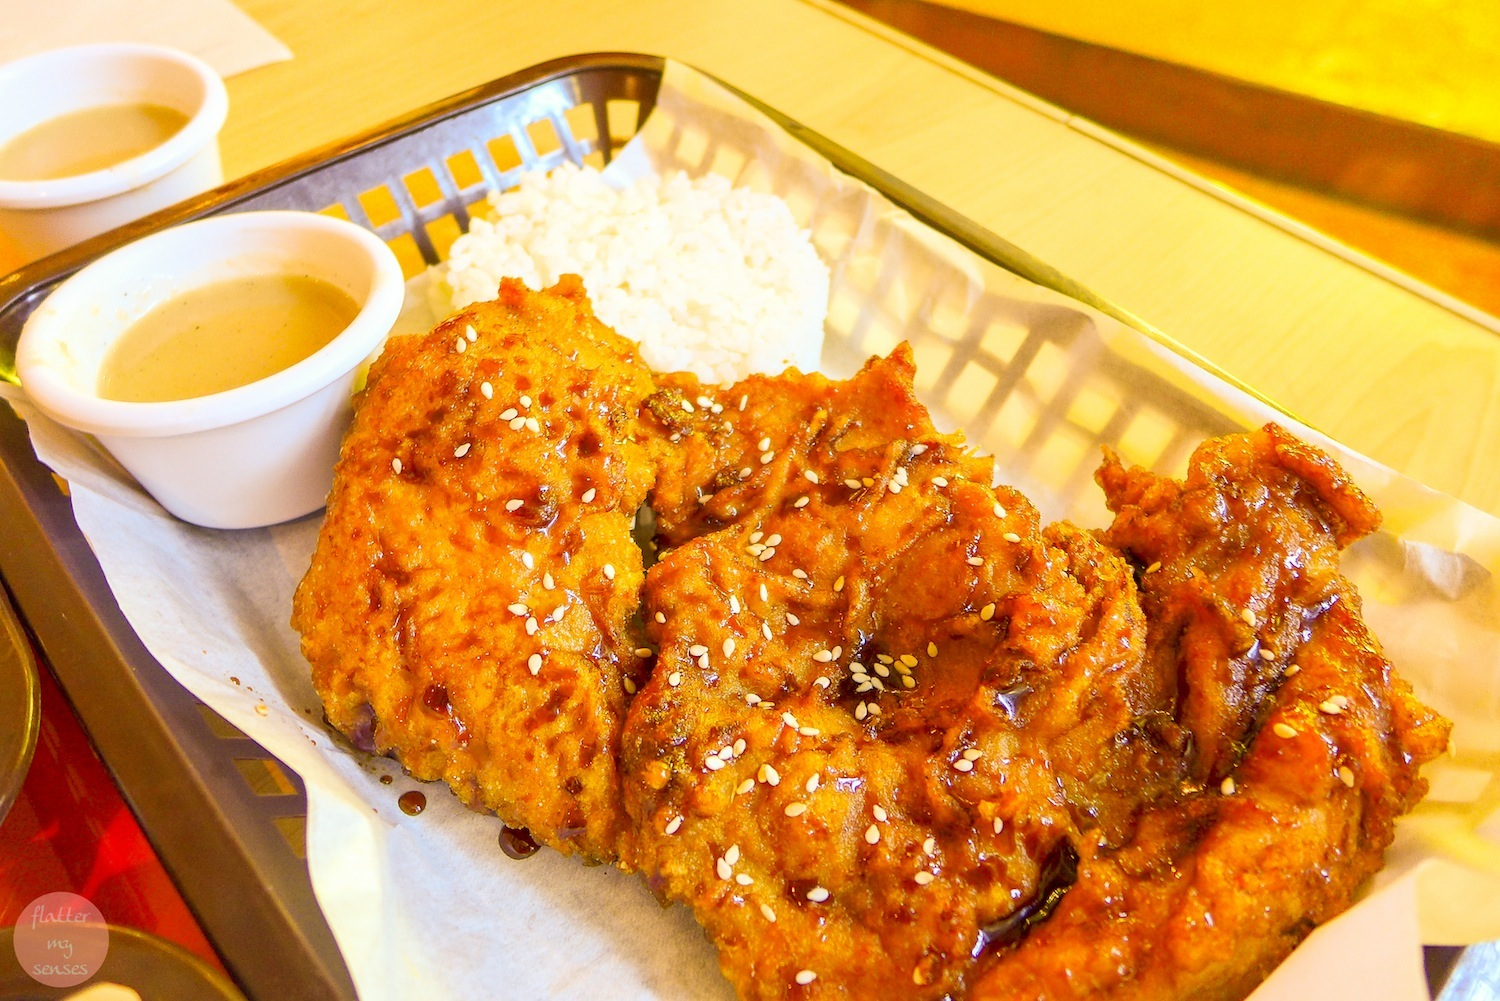 BBQ Large Fried Chicken(Php 125) + Php 35 for the rice & drink